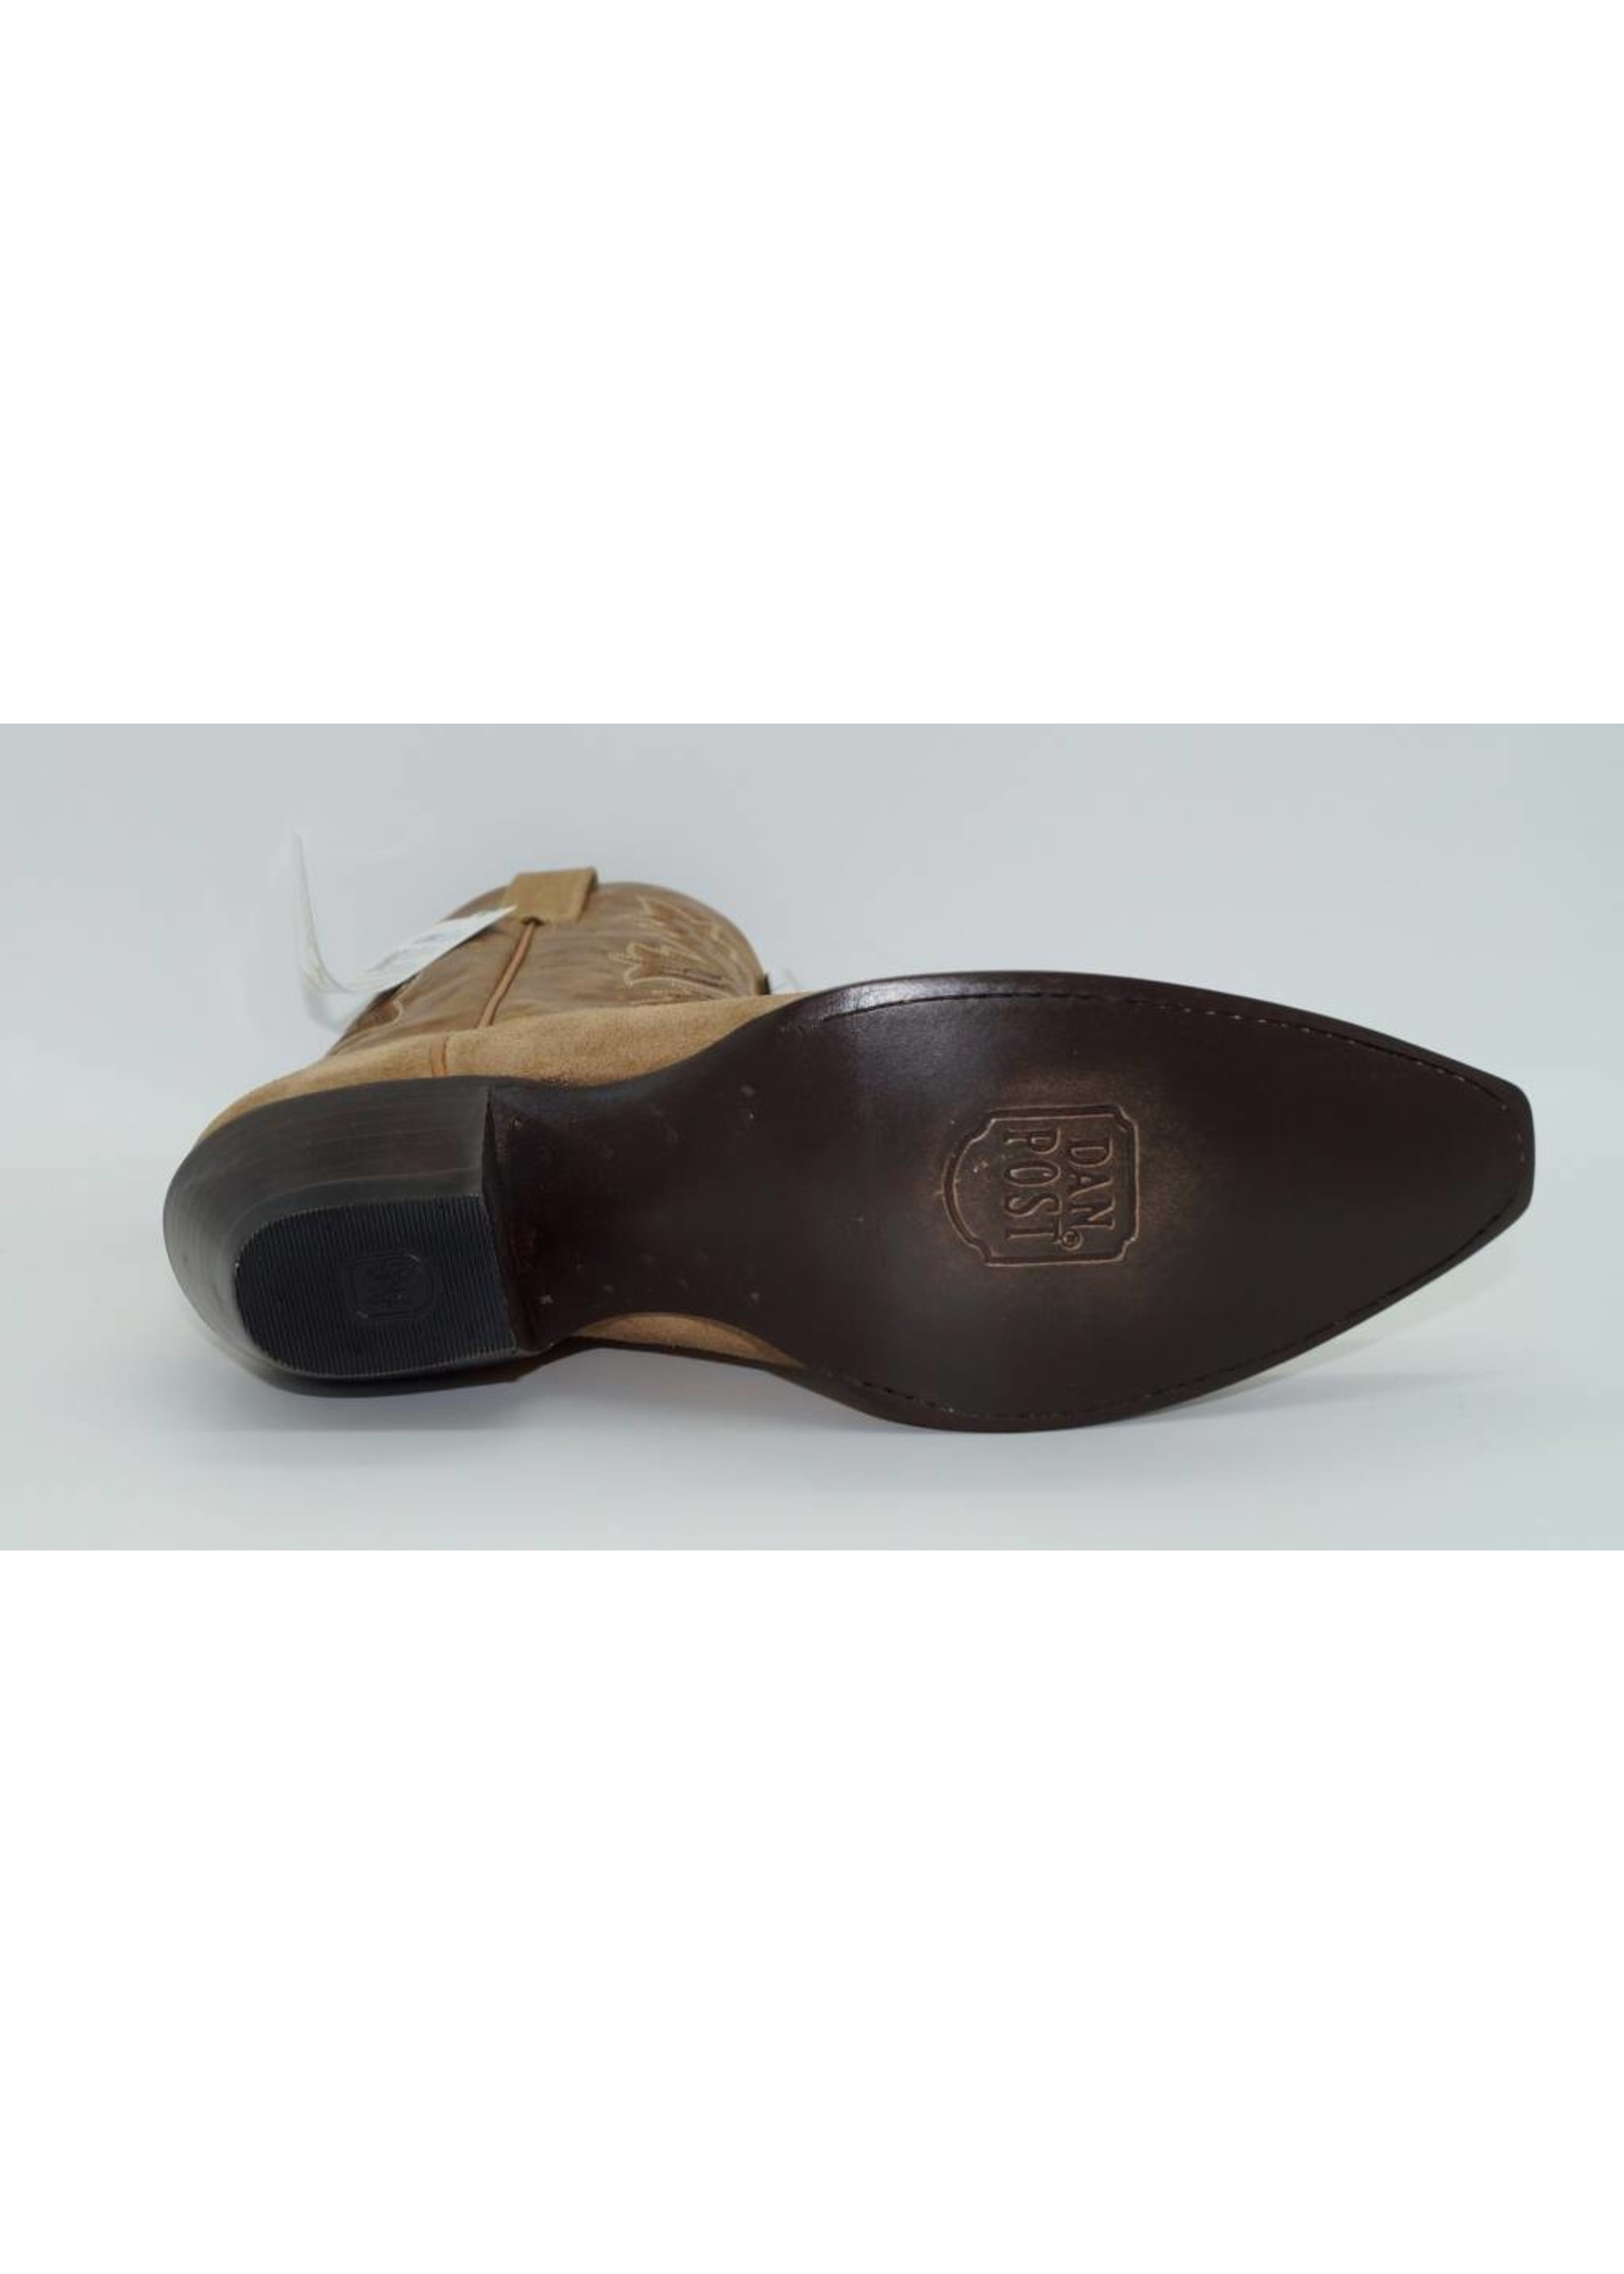 Dan Post DP3608  Tan Suede 10M